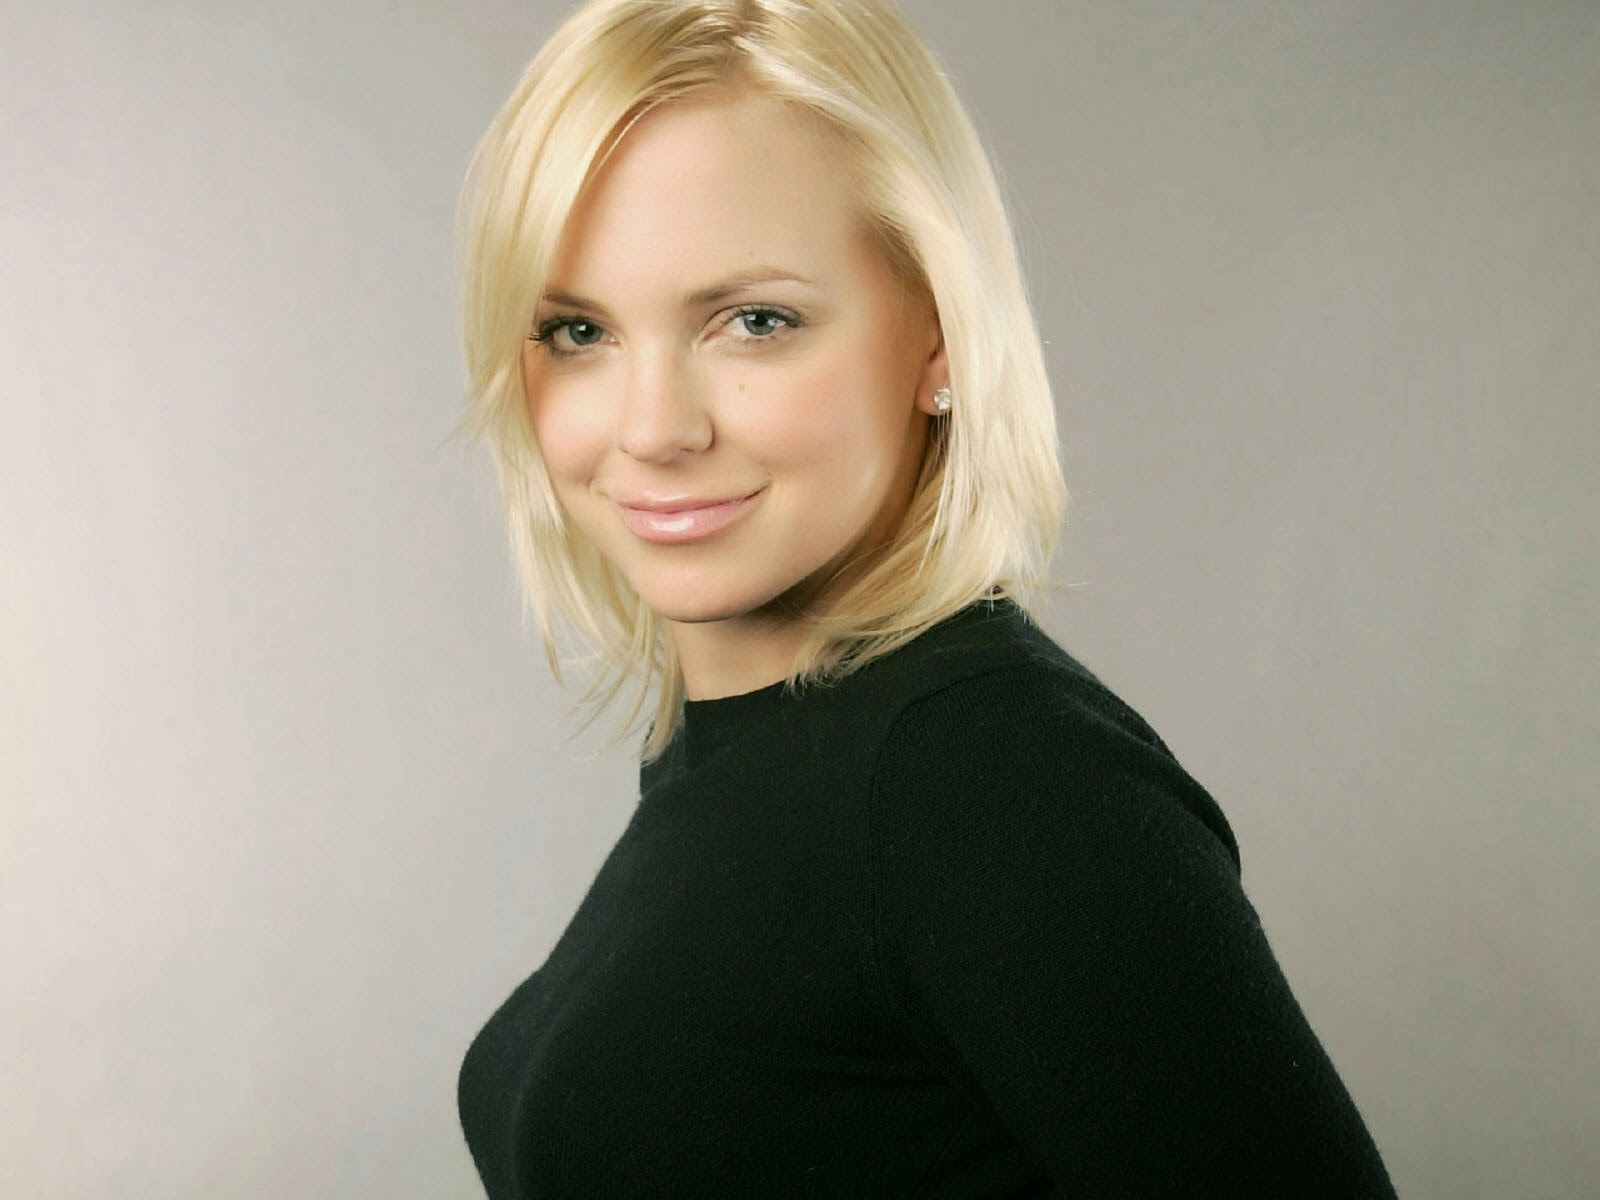 Anna Faris Hd Wallpapers Free Download